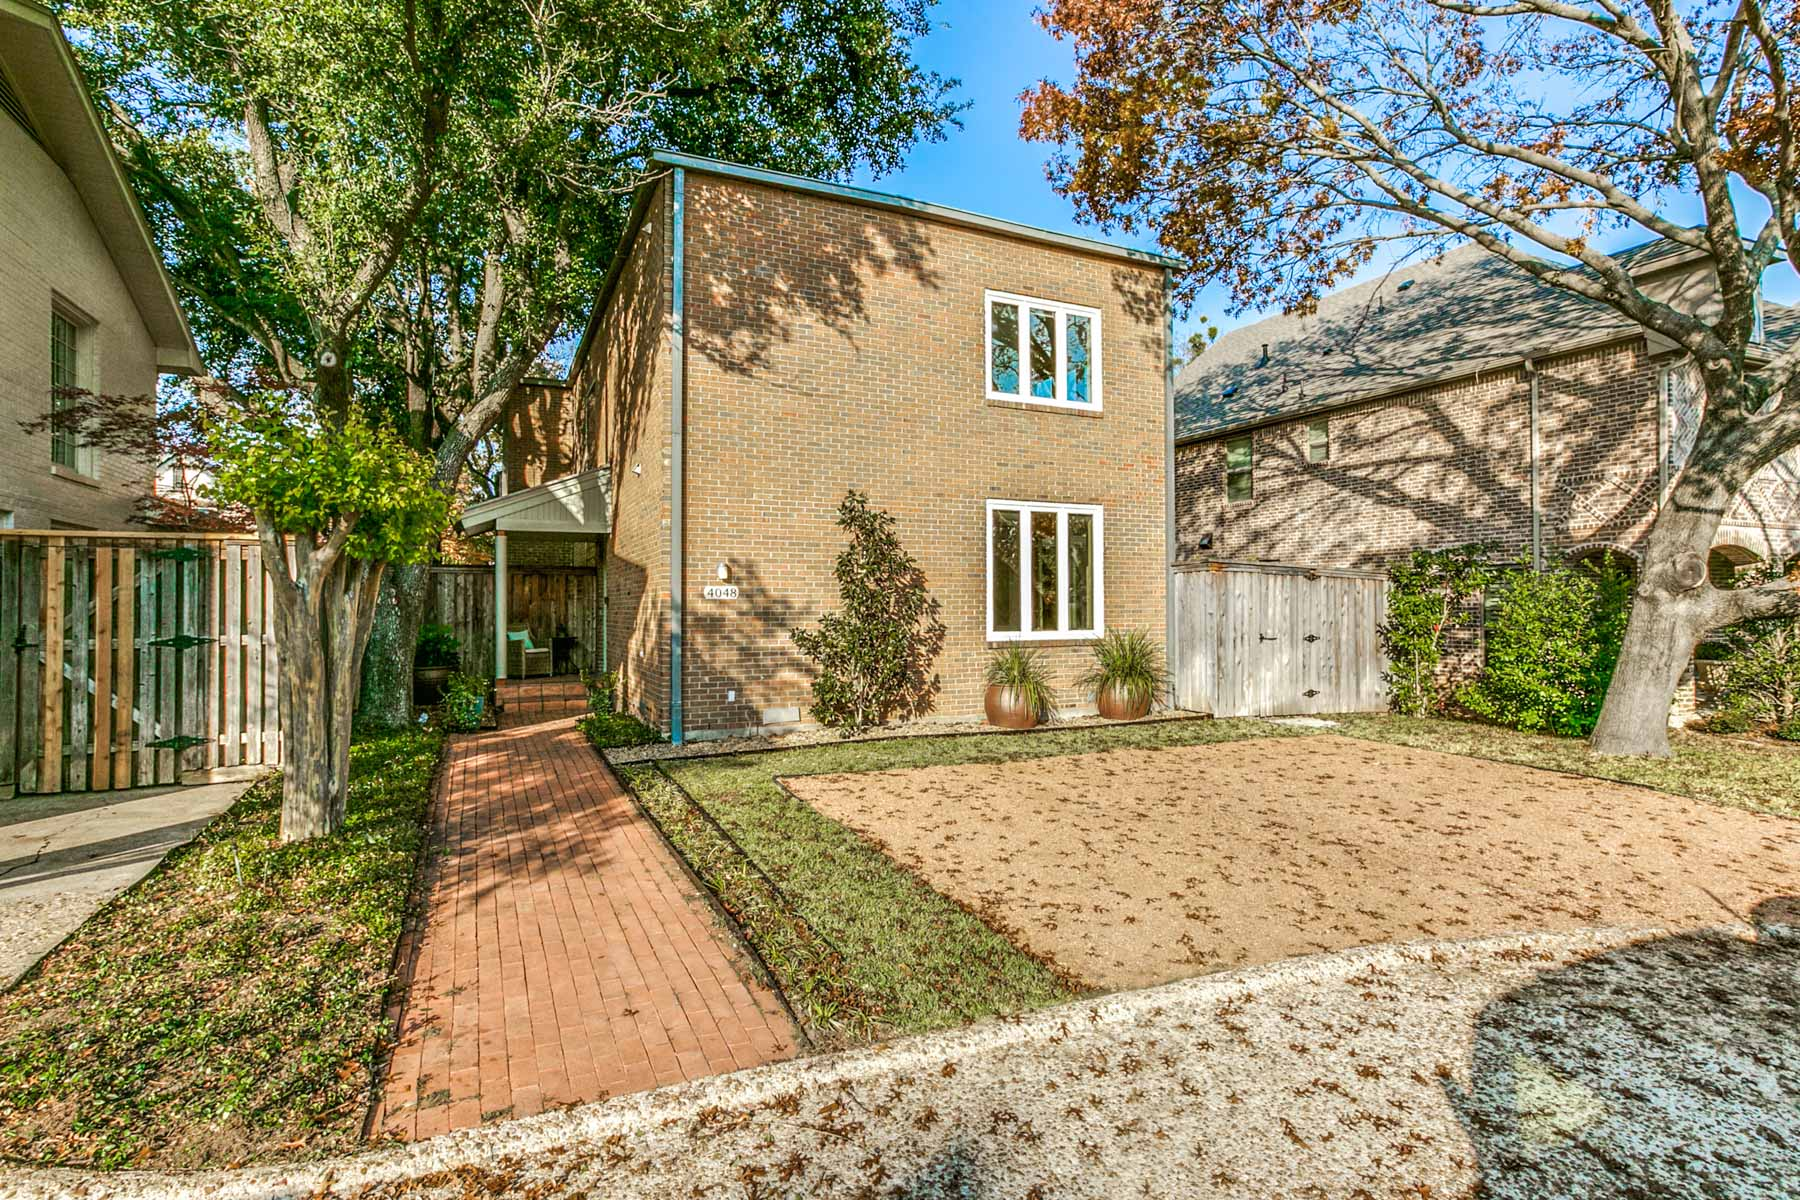 Single Family Home for Sale at 4048 Lovers Lane, UNIVERSITY PARK 4048 Lovers Ln University Park, Texas, 75225 United States